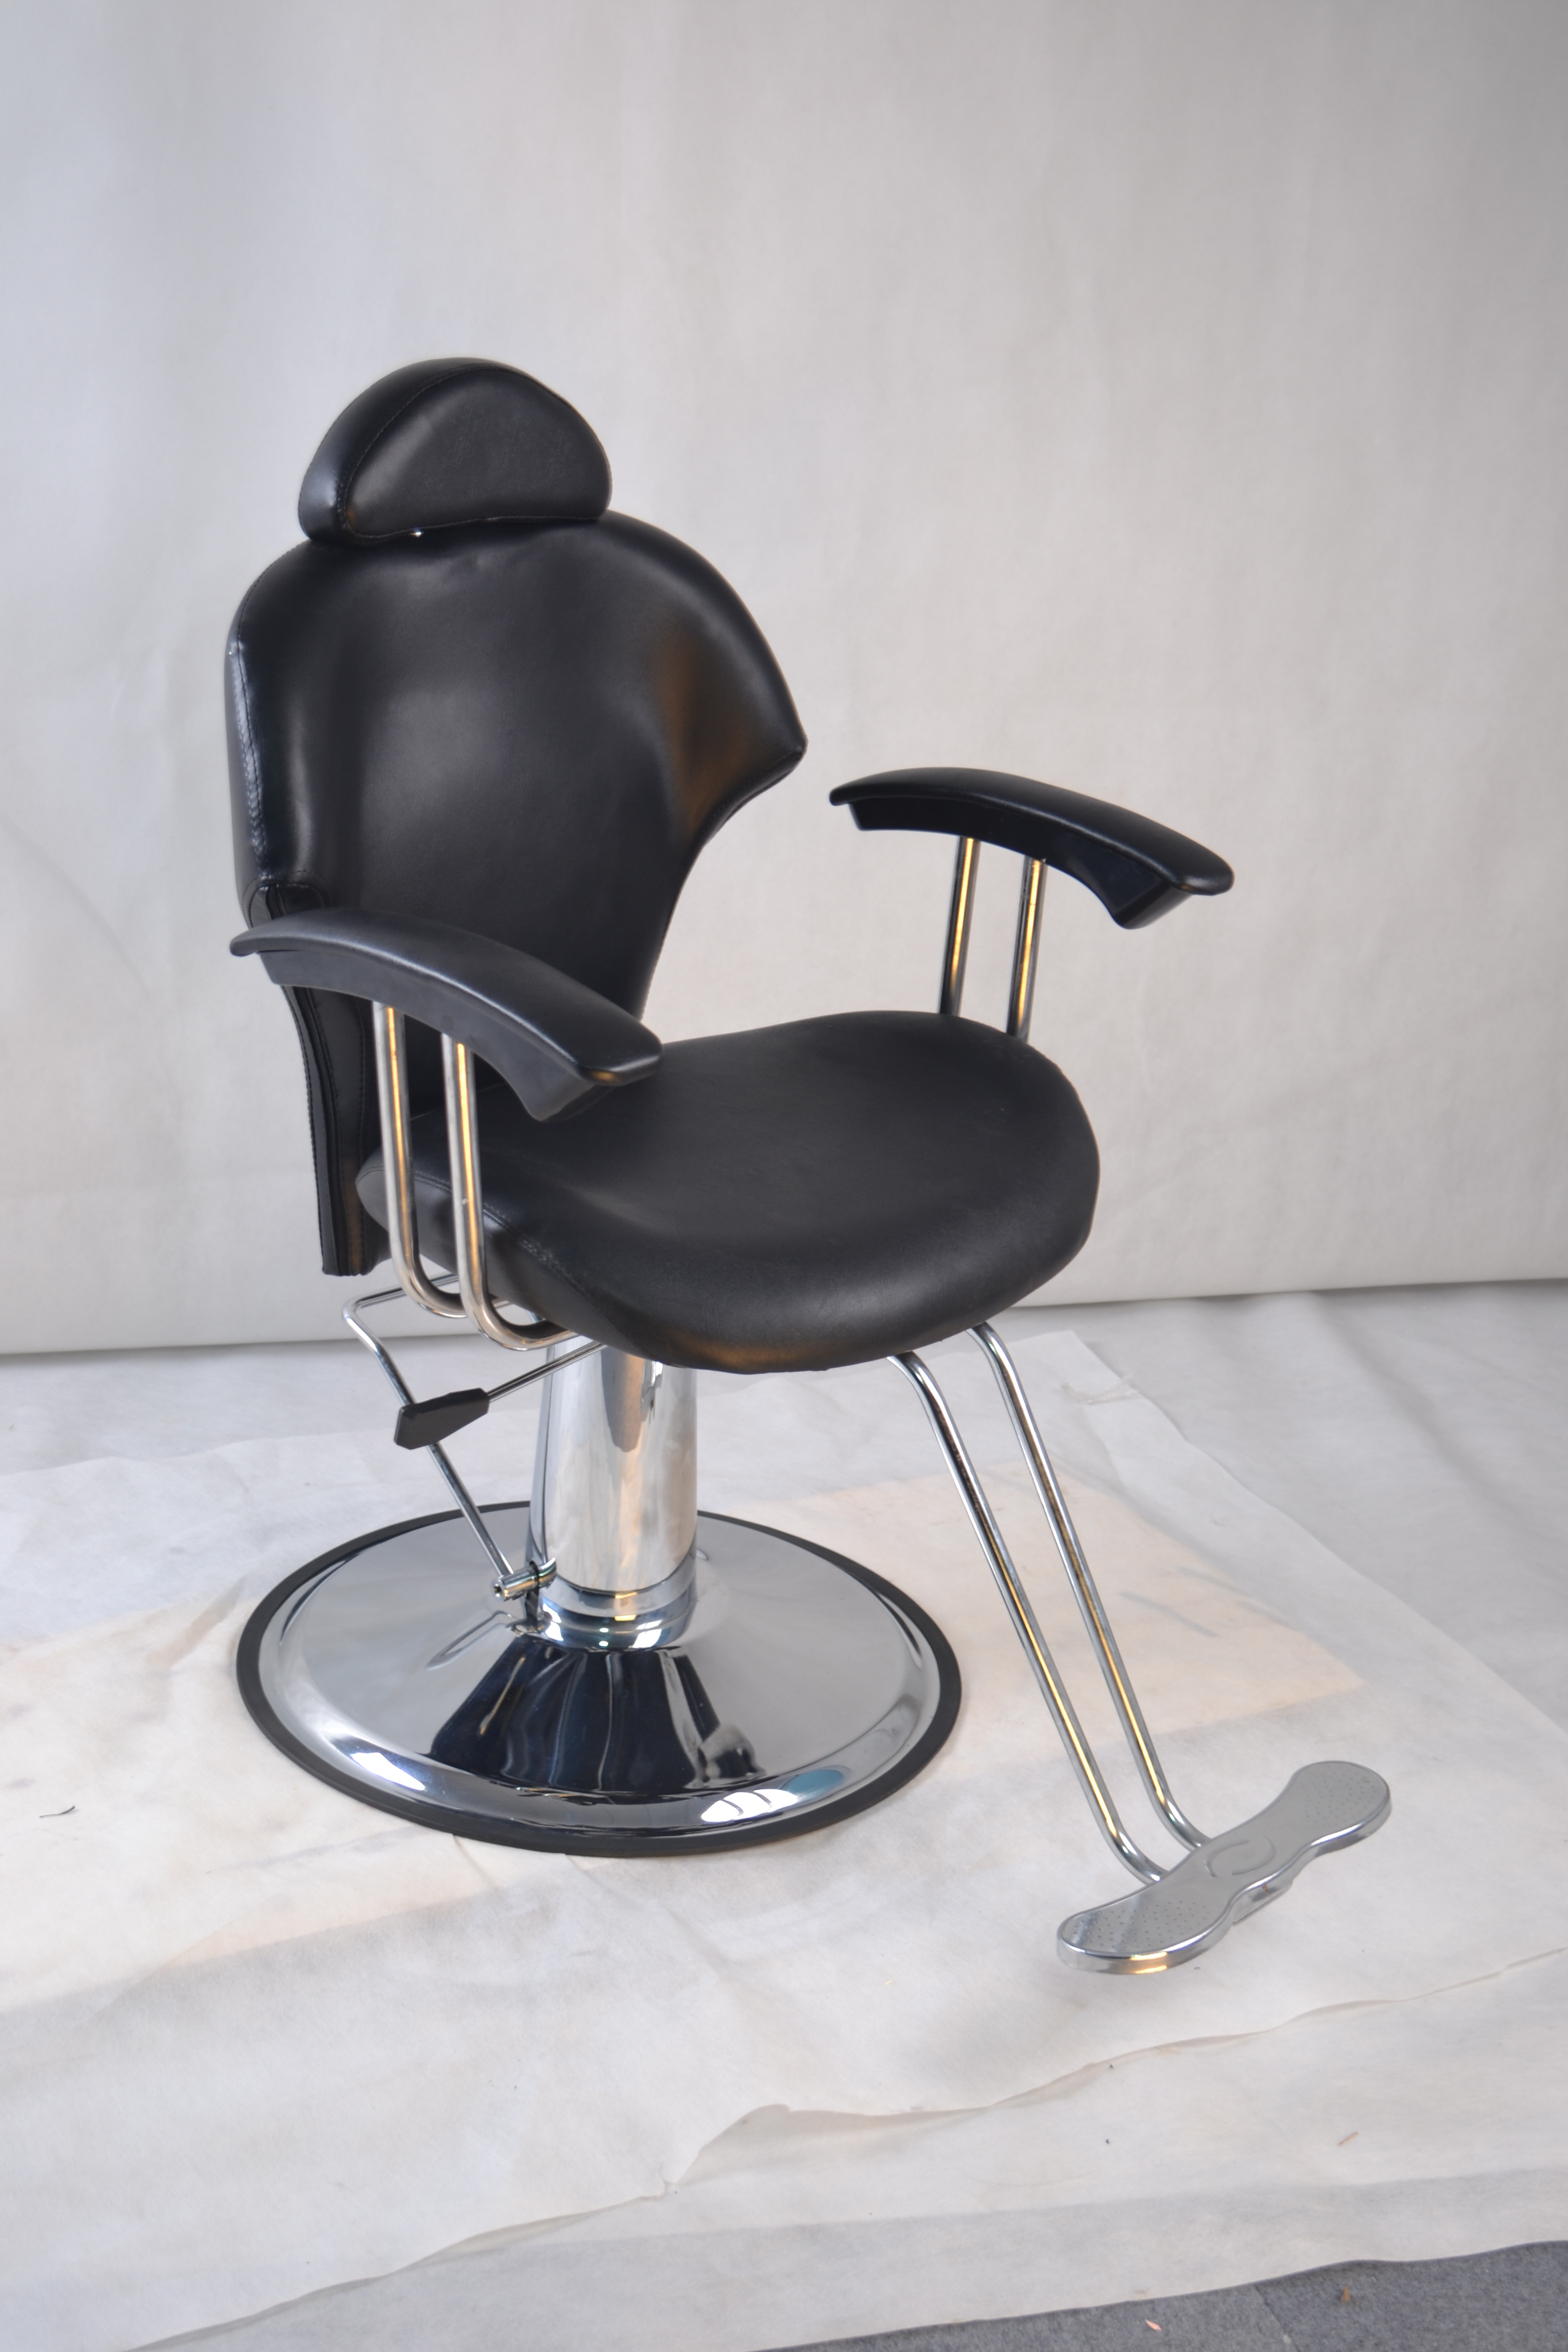 Used reclining hydraulic barber chair salon styling spa for Used salon chairs